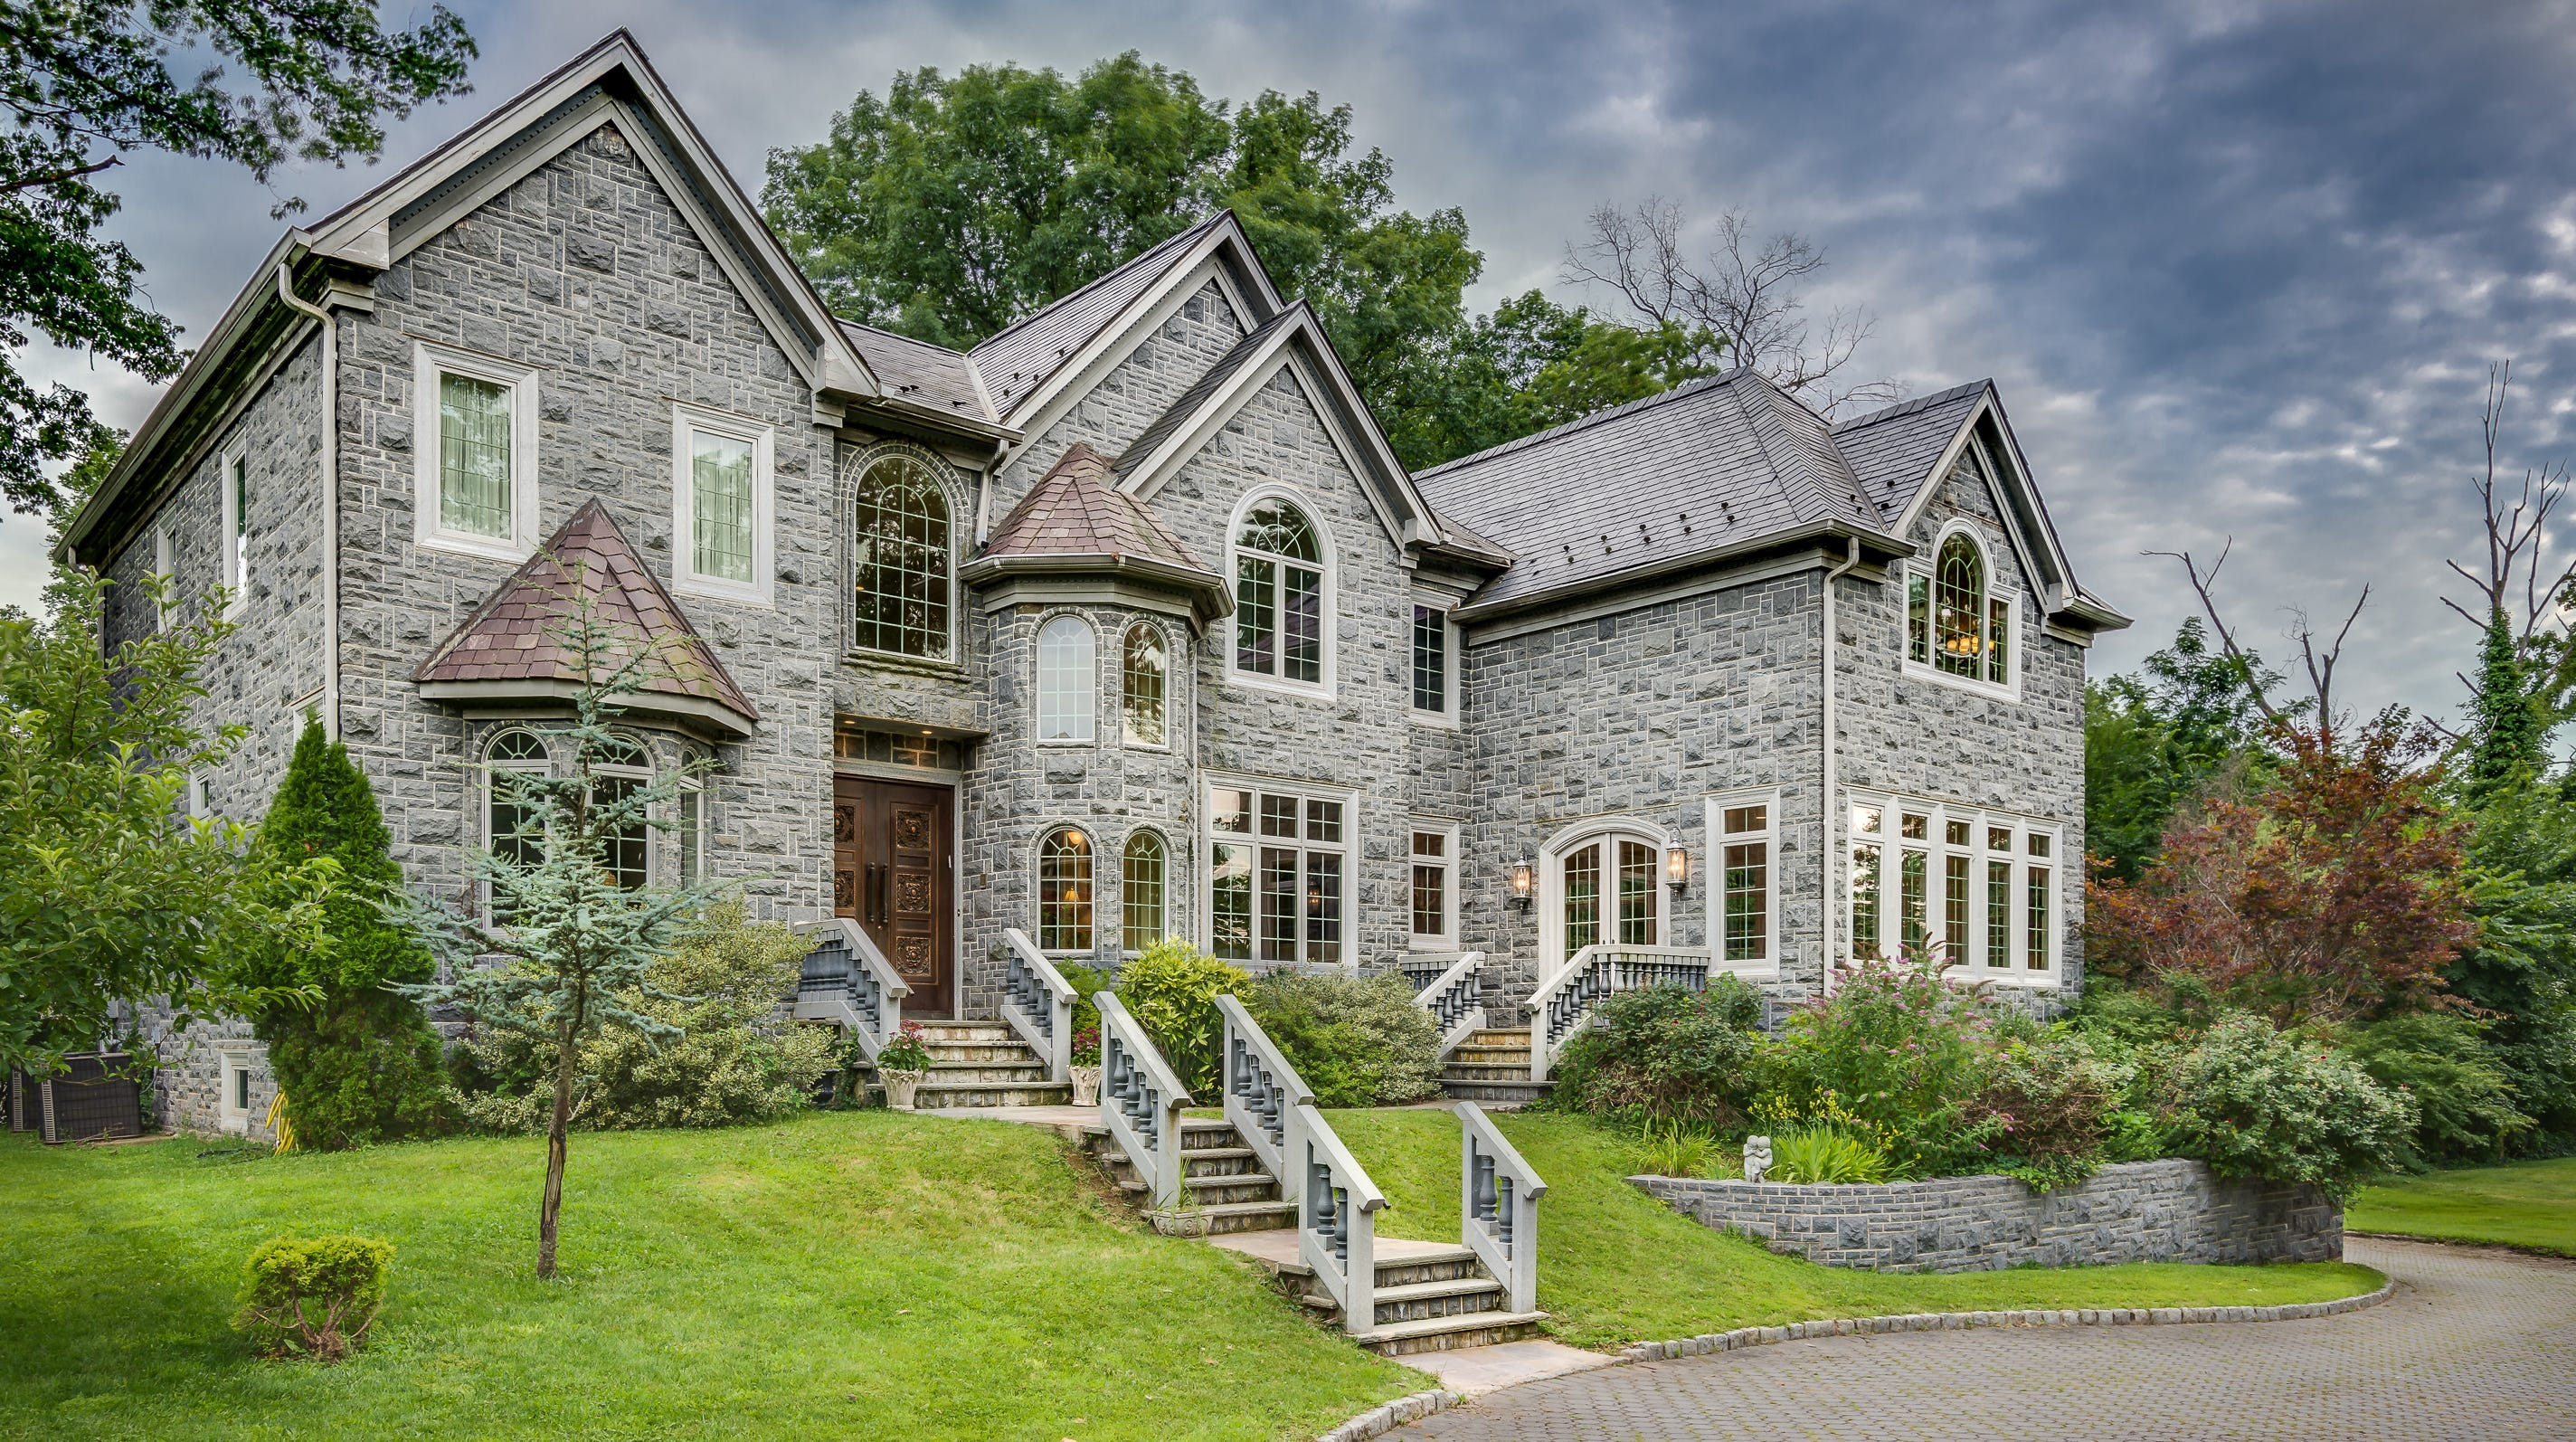 This five-bedroom estate home emulates a French chateau on more than an acre of secluded land in the Colonia estate section of Woodbridge.